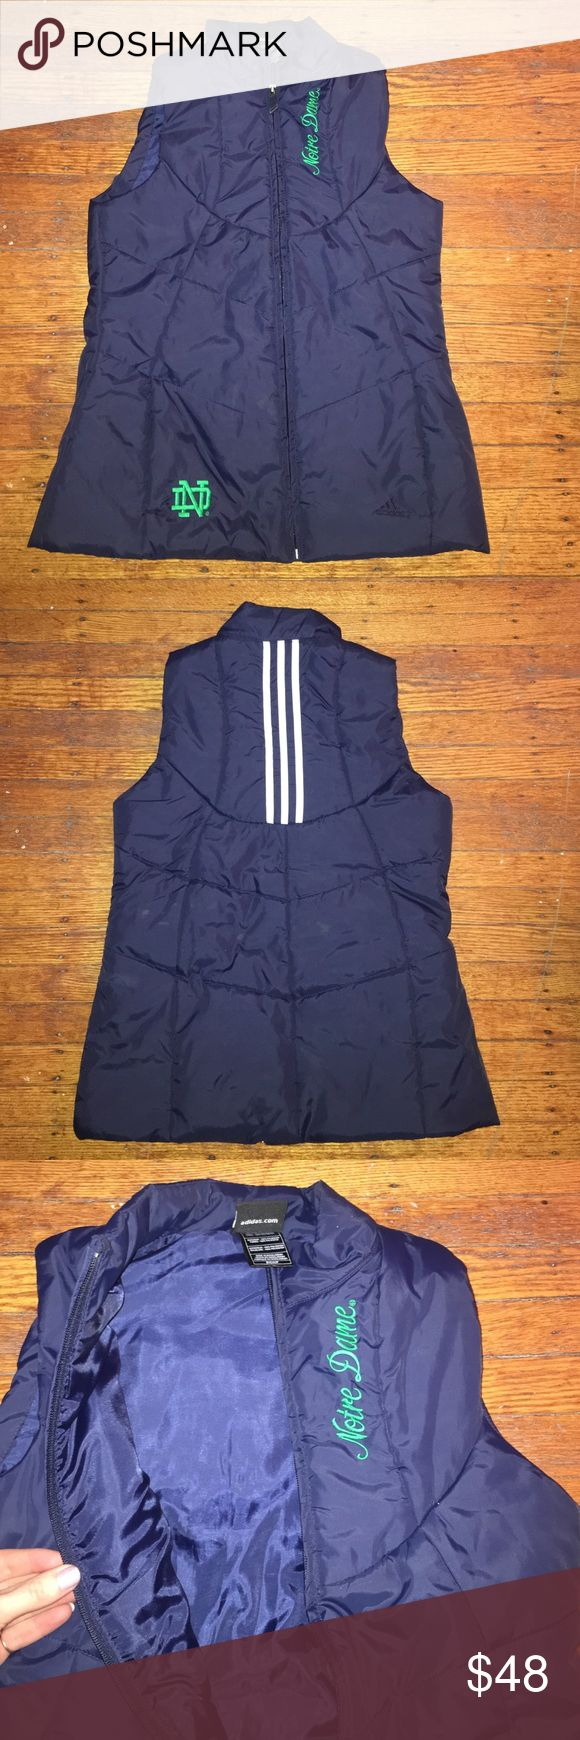 Notre Dame Adidas Vest Women's small navy blue Notre Dame vest! Great for chilly weather. Brand new, worn less than 5 times. Adidas Jackets & Coats Vests